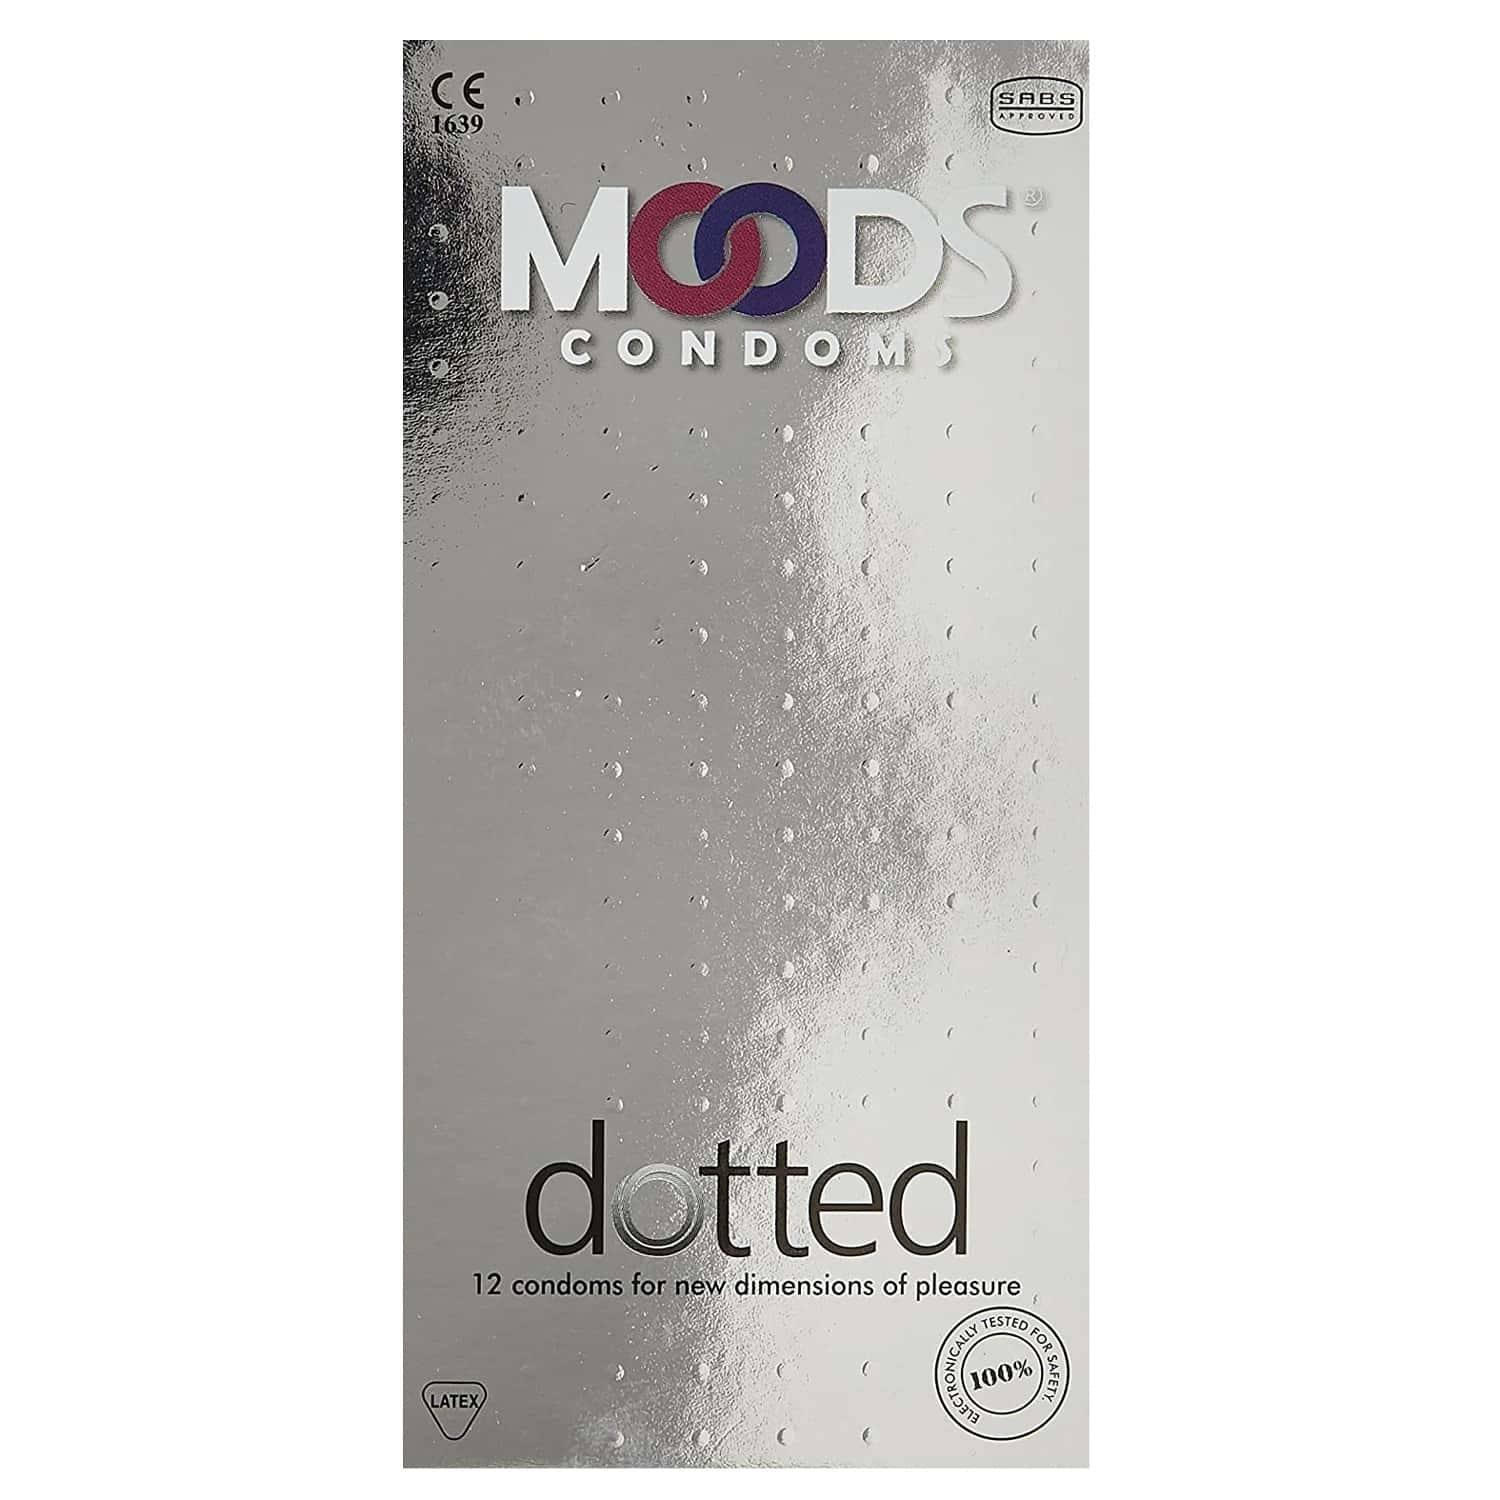 Moods Dotted Condom 12